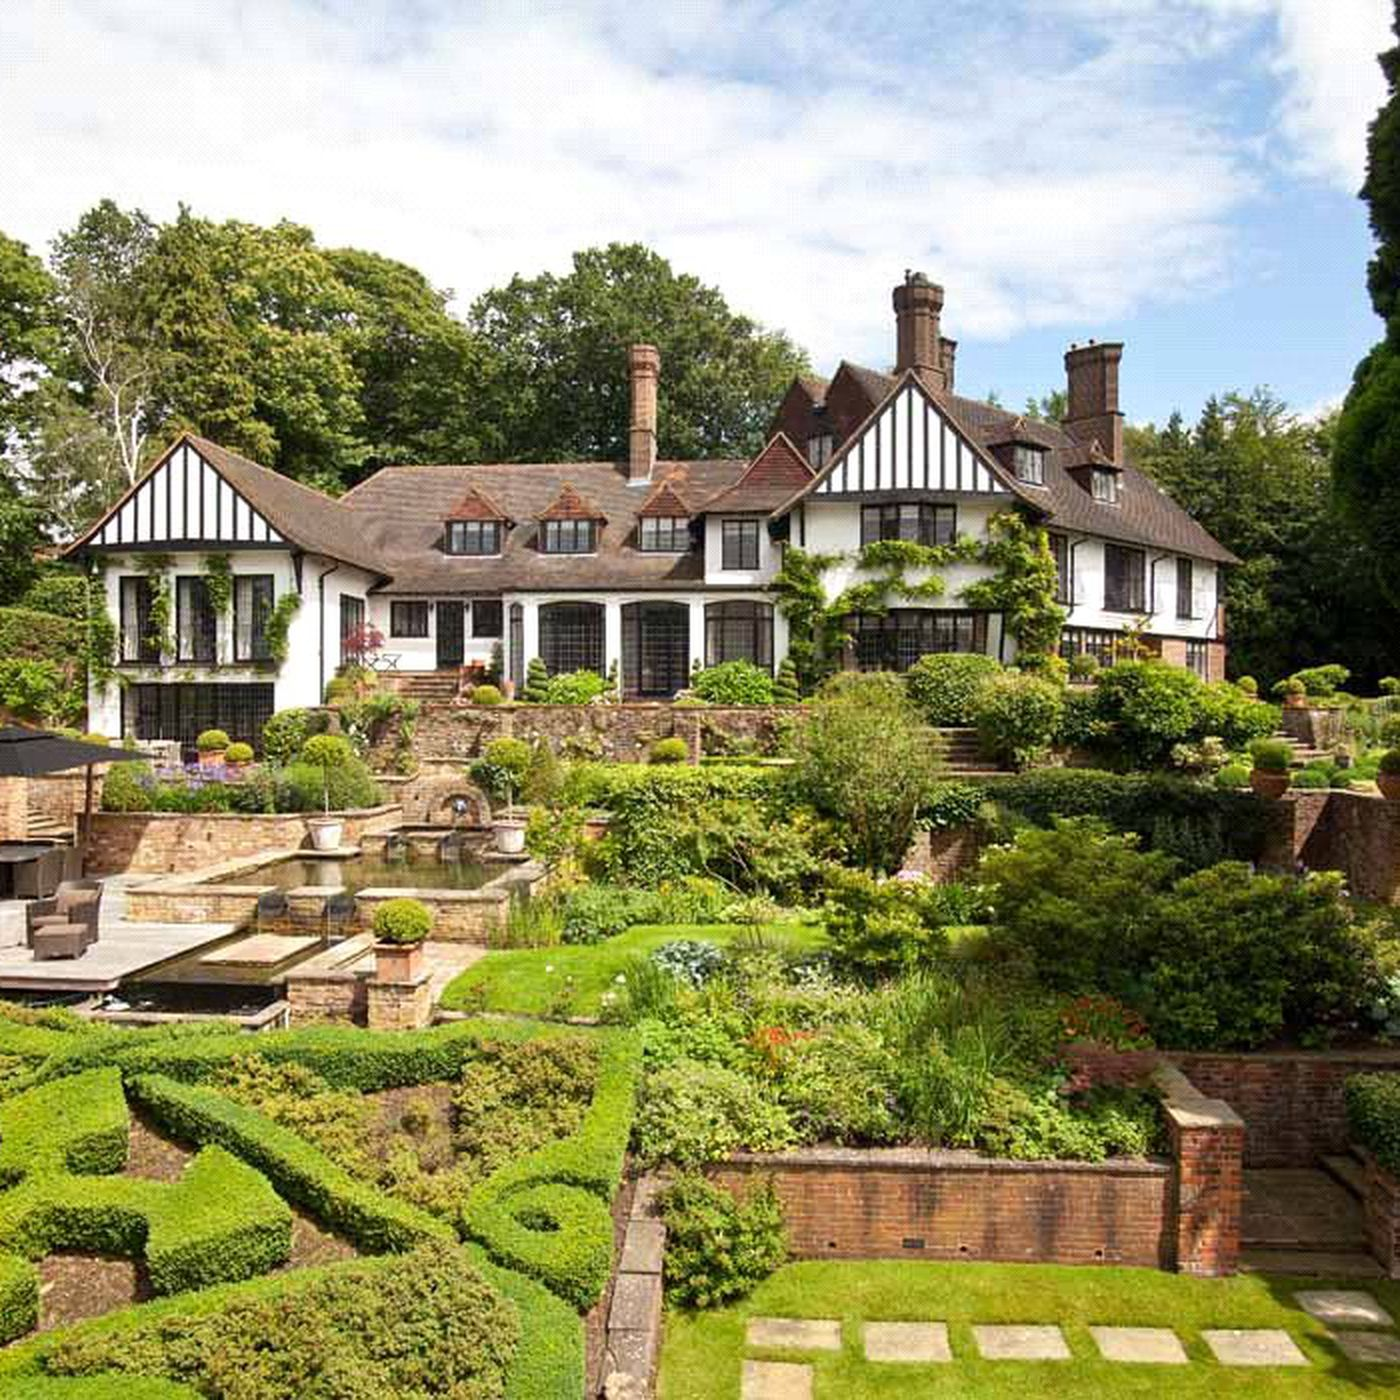 All You Need Is 11 7m To Buy John Lennon S Former Surrey Home Curbed